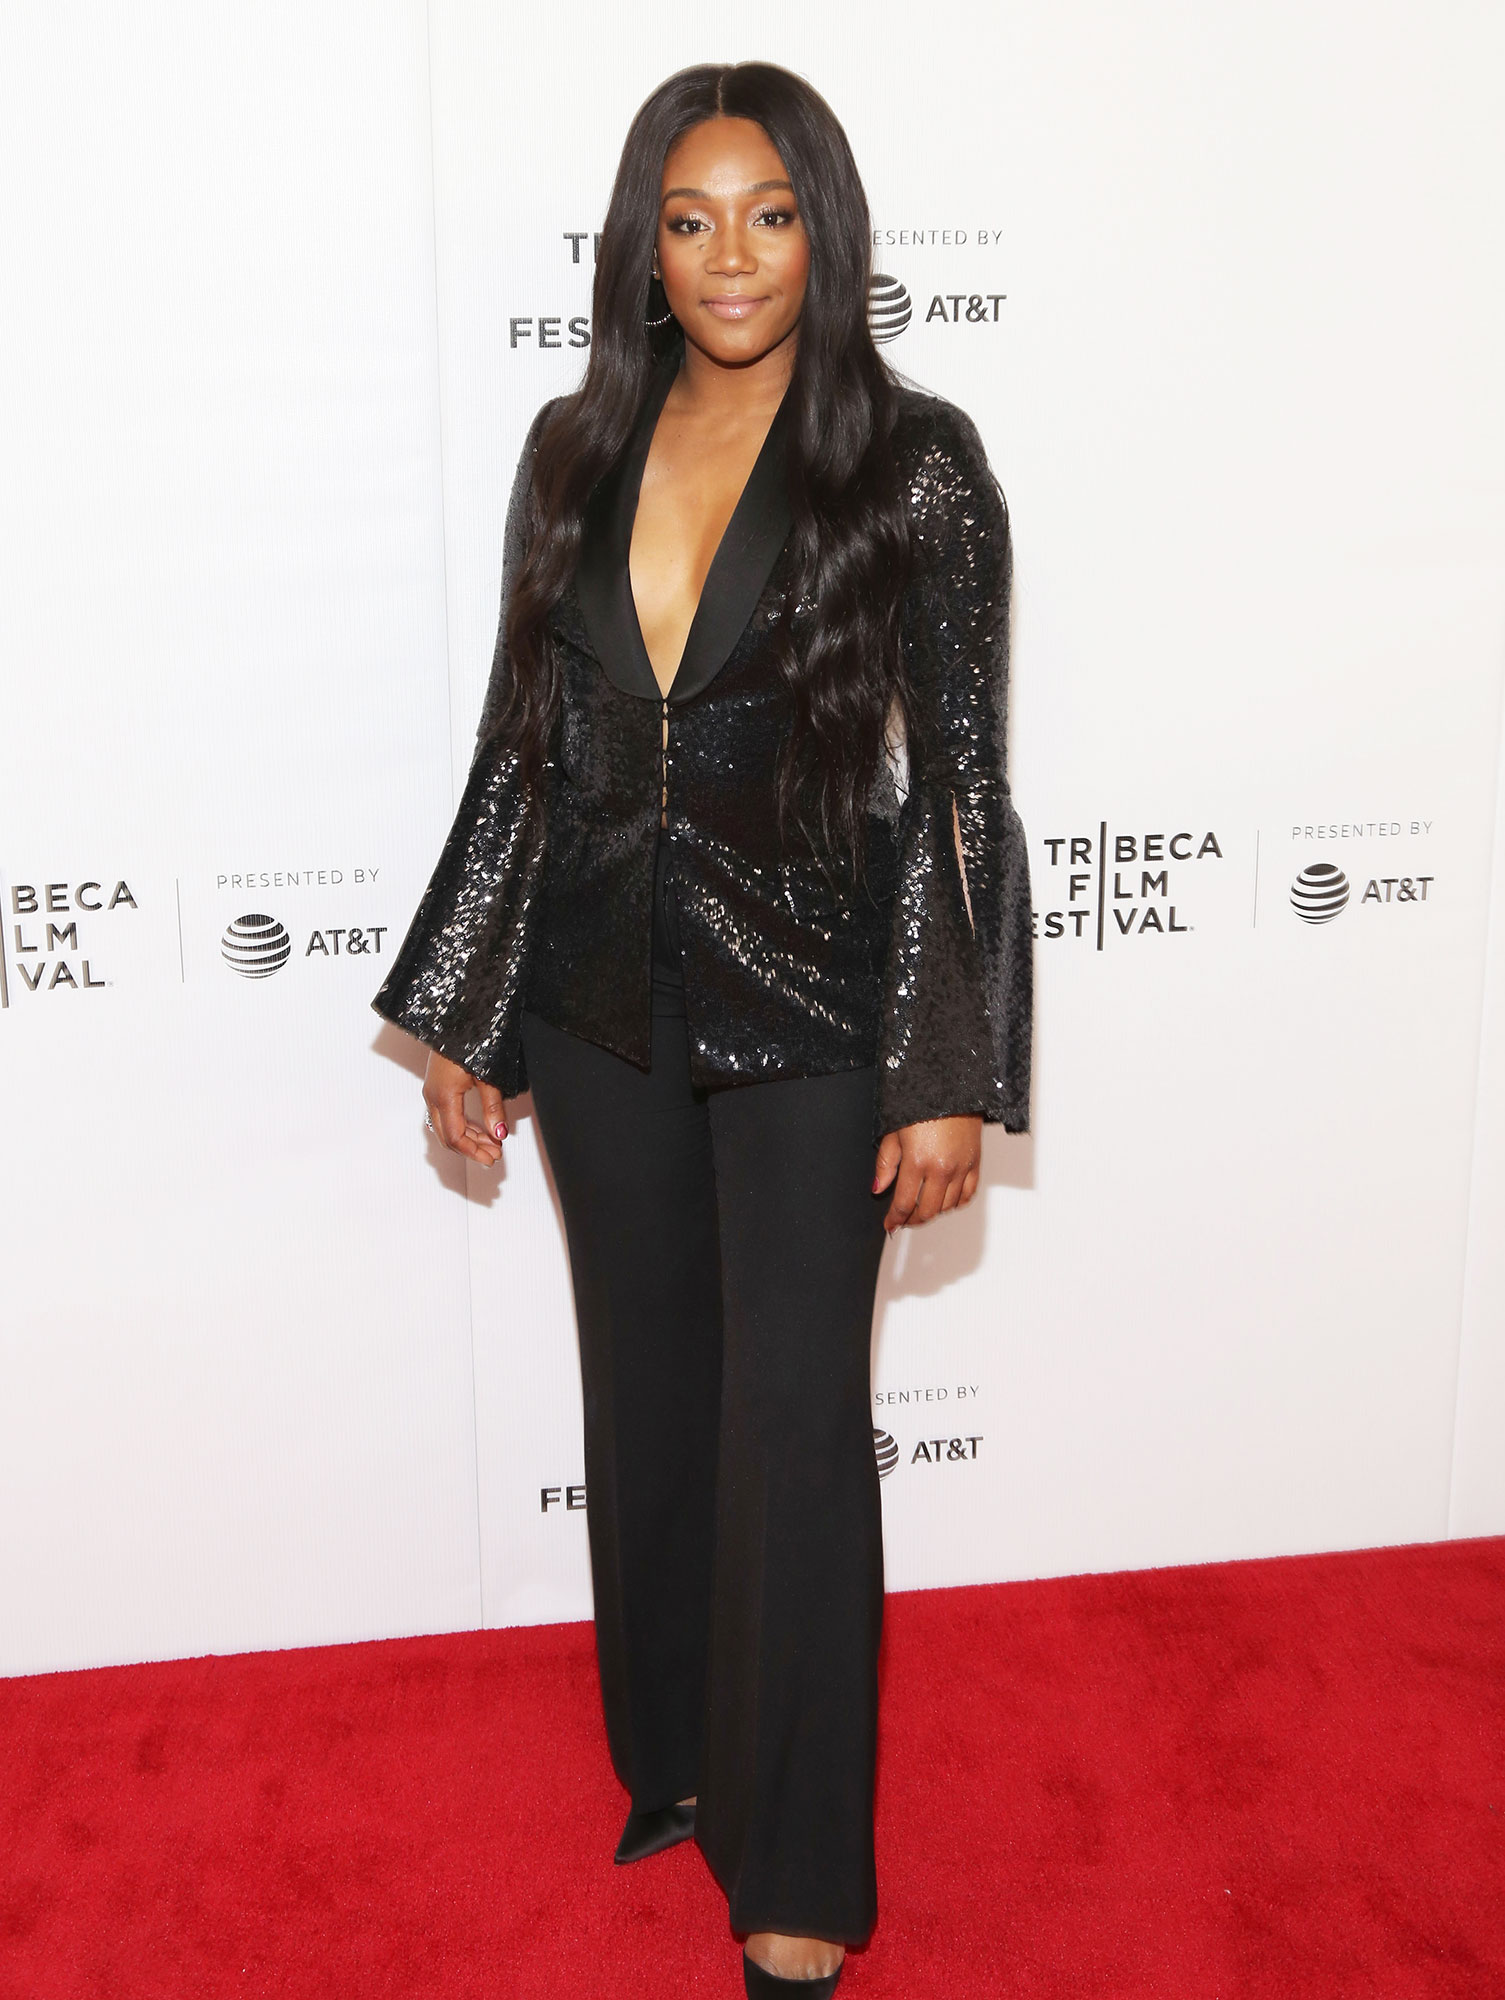 Tiffany Haddish Stars up Their Style Game at Tribeca Film Festival - Rocking the pantsuit trend, the comedian attended the Tuca & Bertie premiere on May 1 in black trousers and a sequin jacket with no shirt underneath.